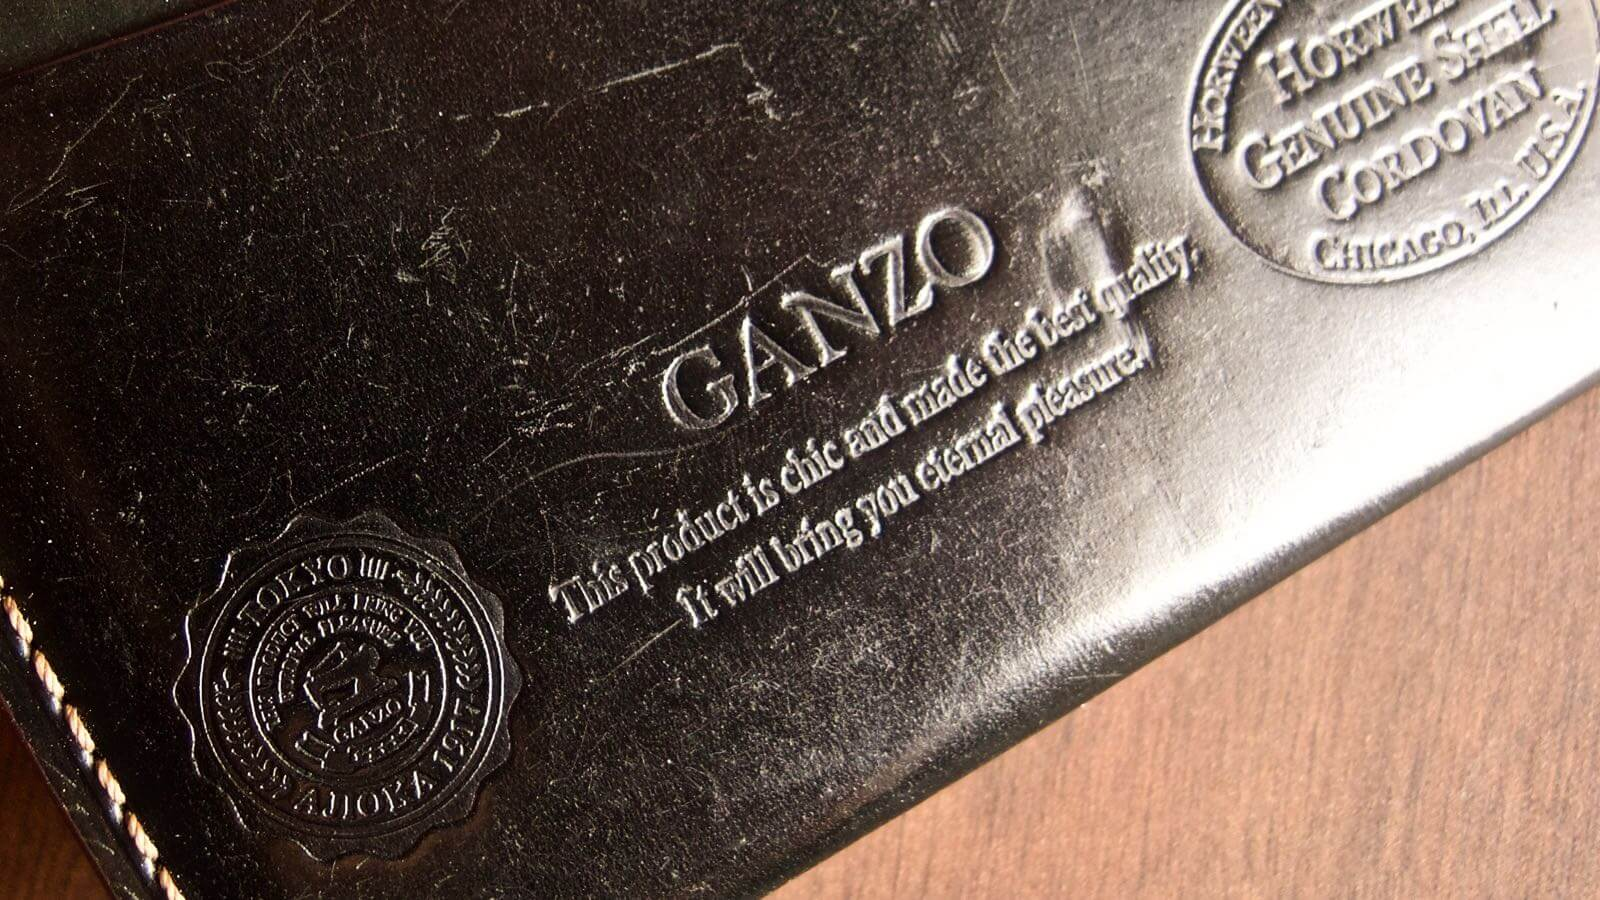 0037 Ganzo Shell Code Bank Business Card Holder 5 Years Aging 05